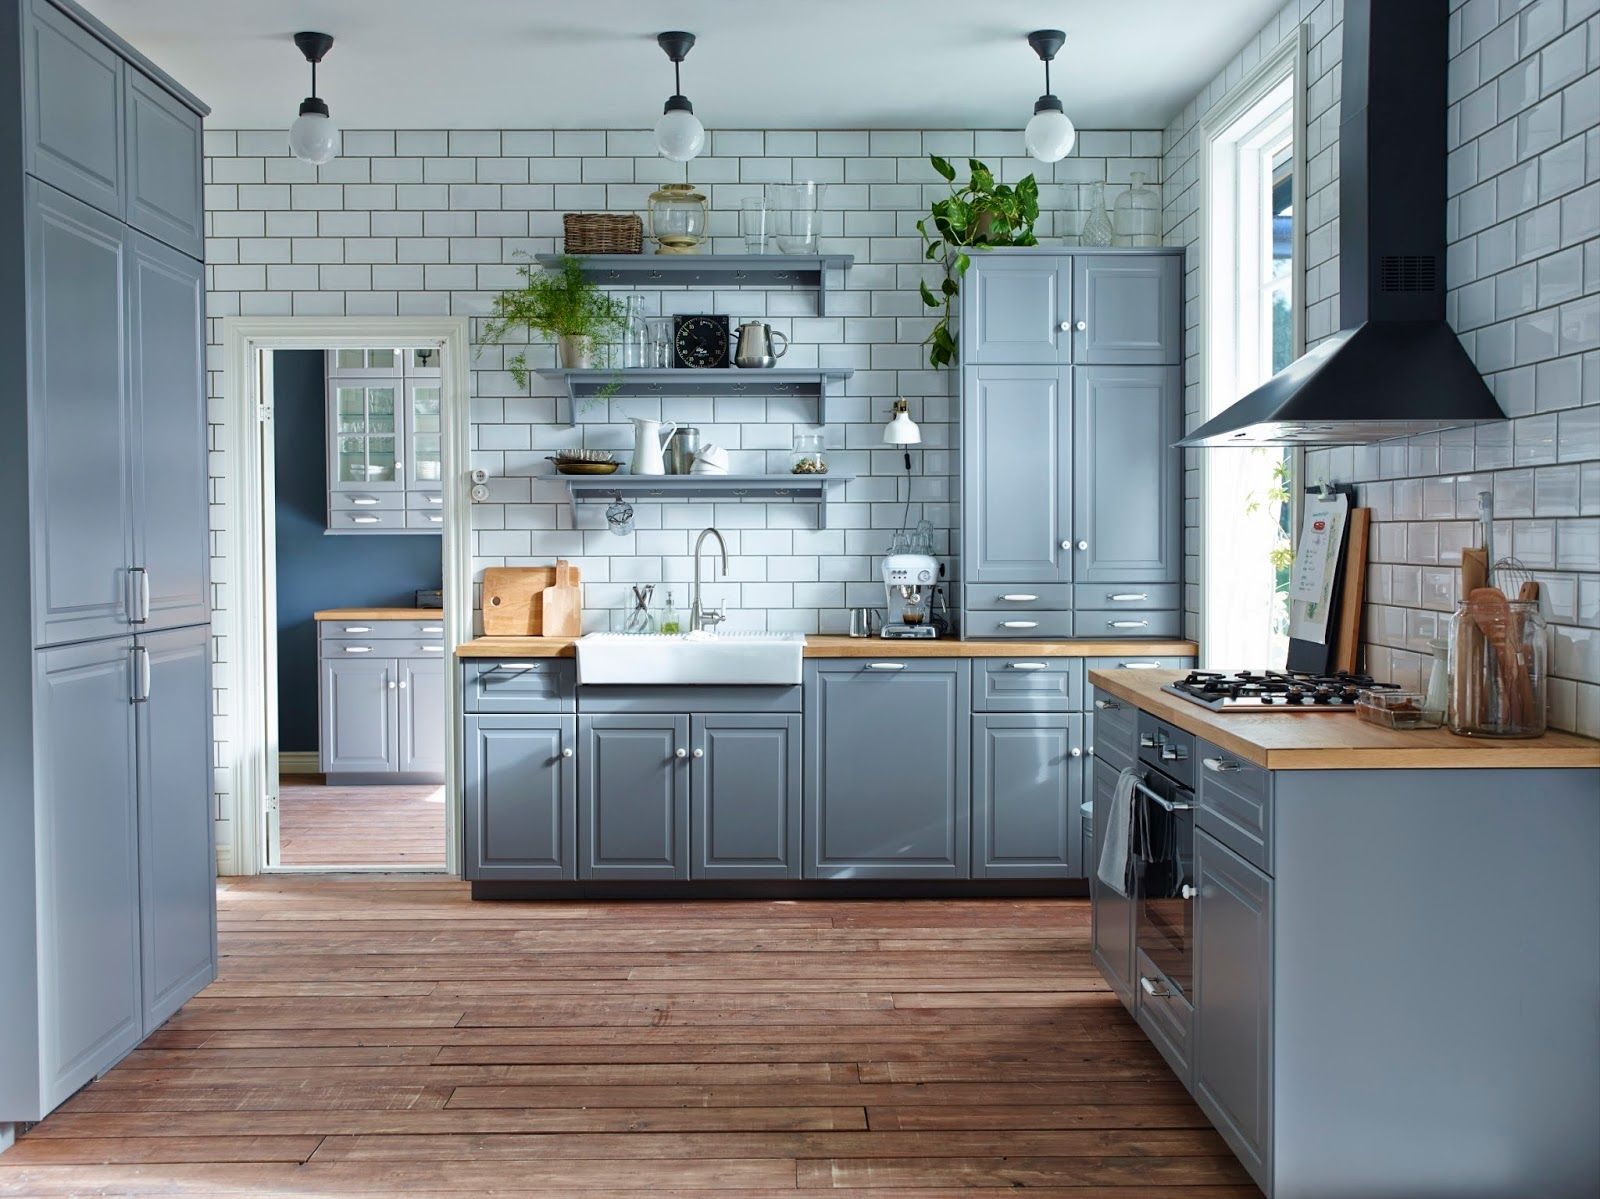 Ikea Metod/Bodbyn Kitchen £3060 | home design | Pinterest | Kitchens ...